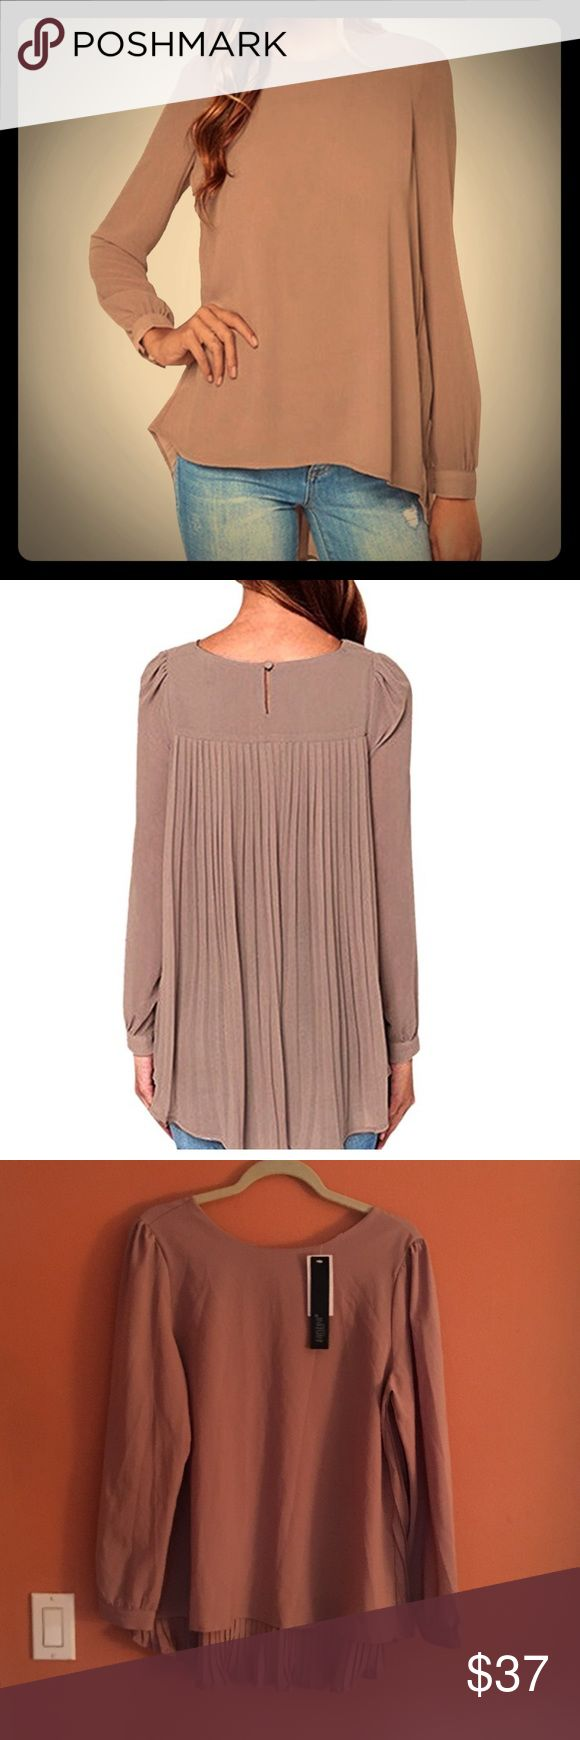 Chiffon blouse with high neckline and pleated back Material:Chiffon  Type:Blouse  Color:Khaki New Lady's Chiffon Loose Chiffon Casual Cool hi lo Blouse.  tag sizes are Asian sizes. US size 10/12 L/XL the fabric content is not given besides chiffon. Its a really lovely fabric that is a very soft chiffon. Its not see through. 🚫no trades🚫 ask questions Tops Blouses